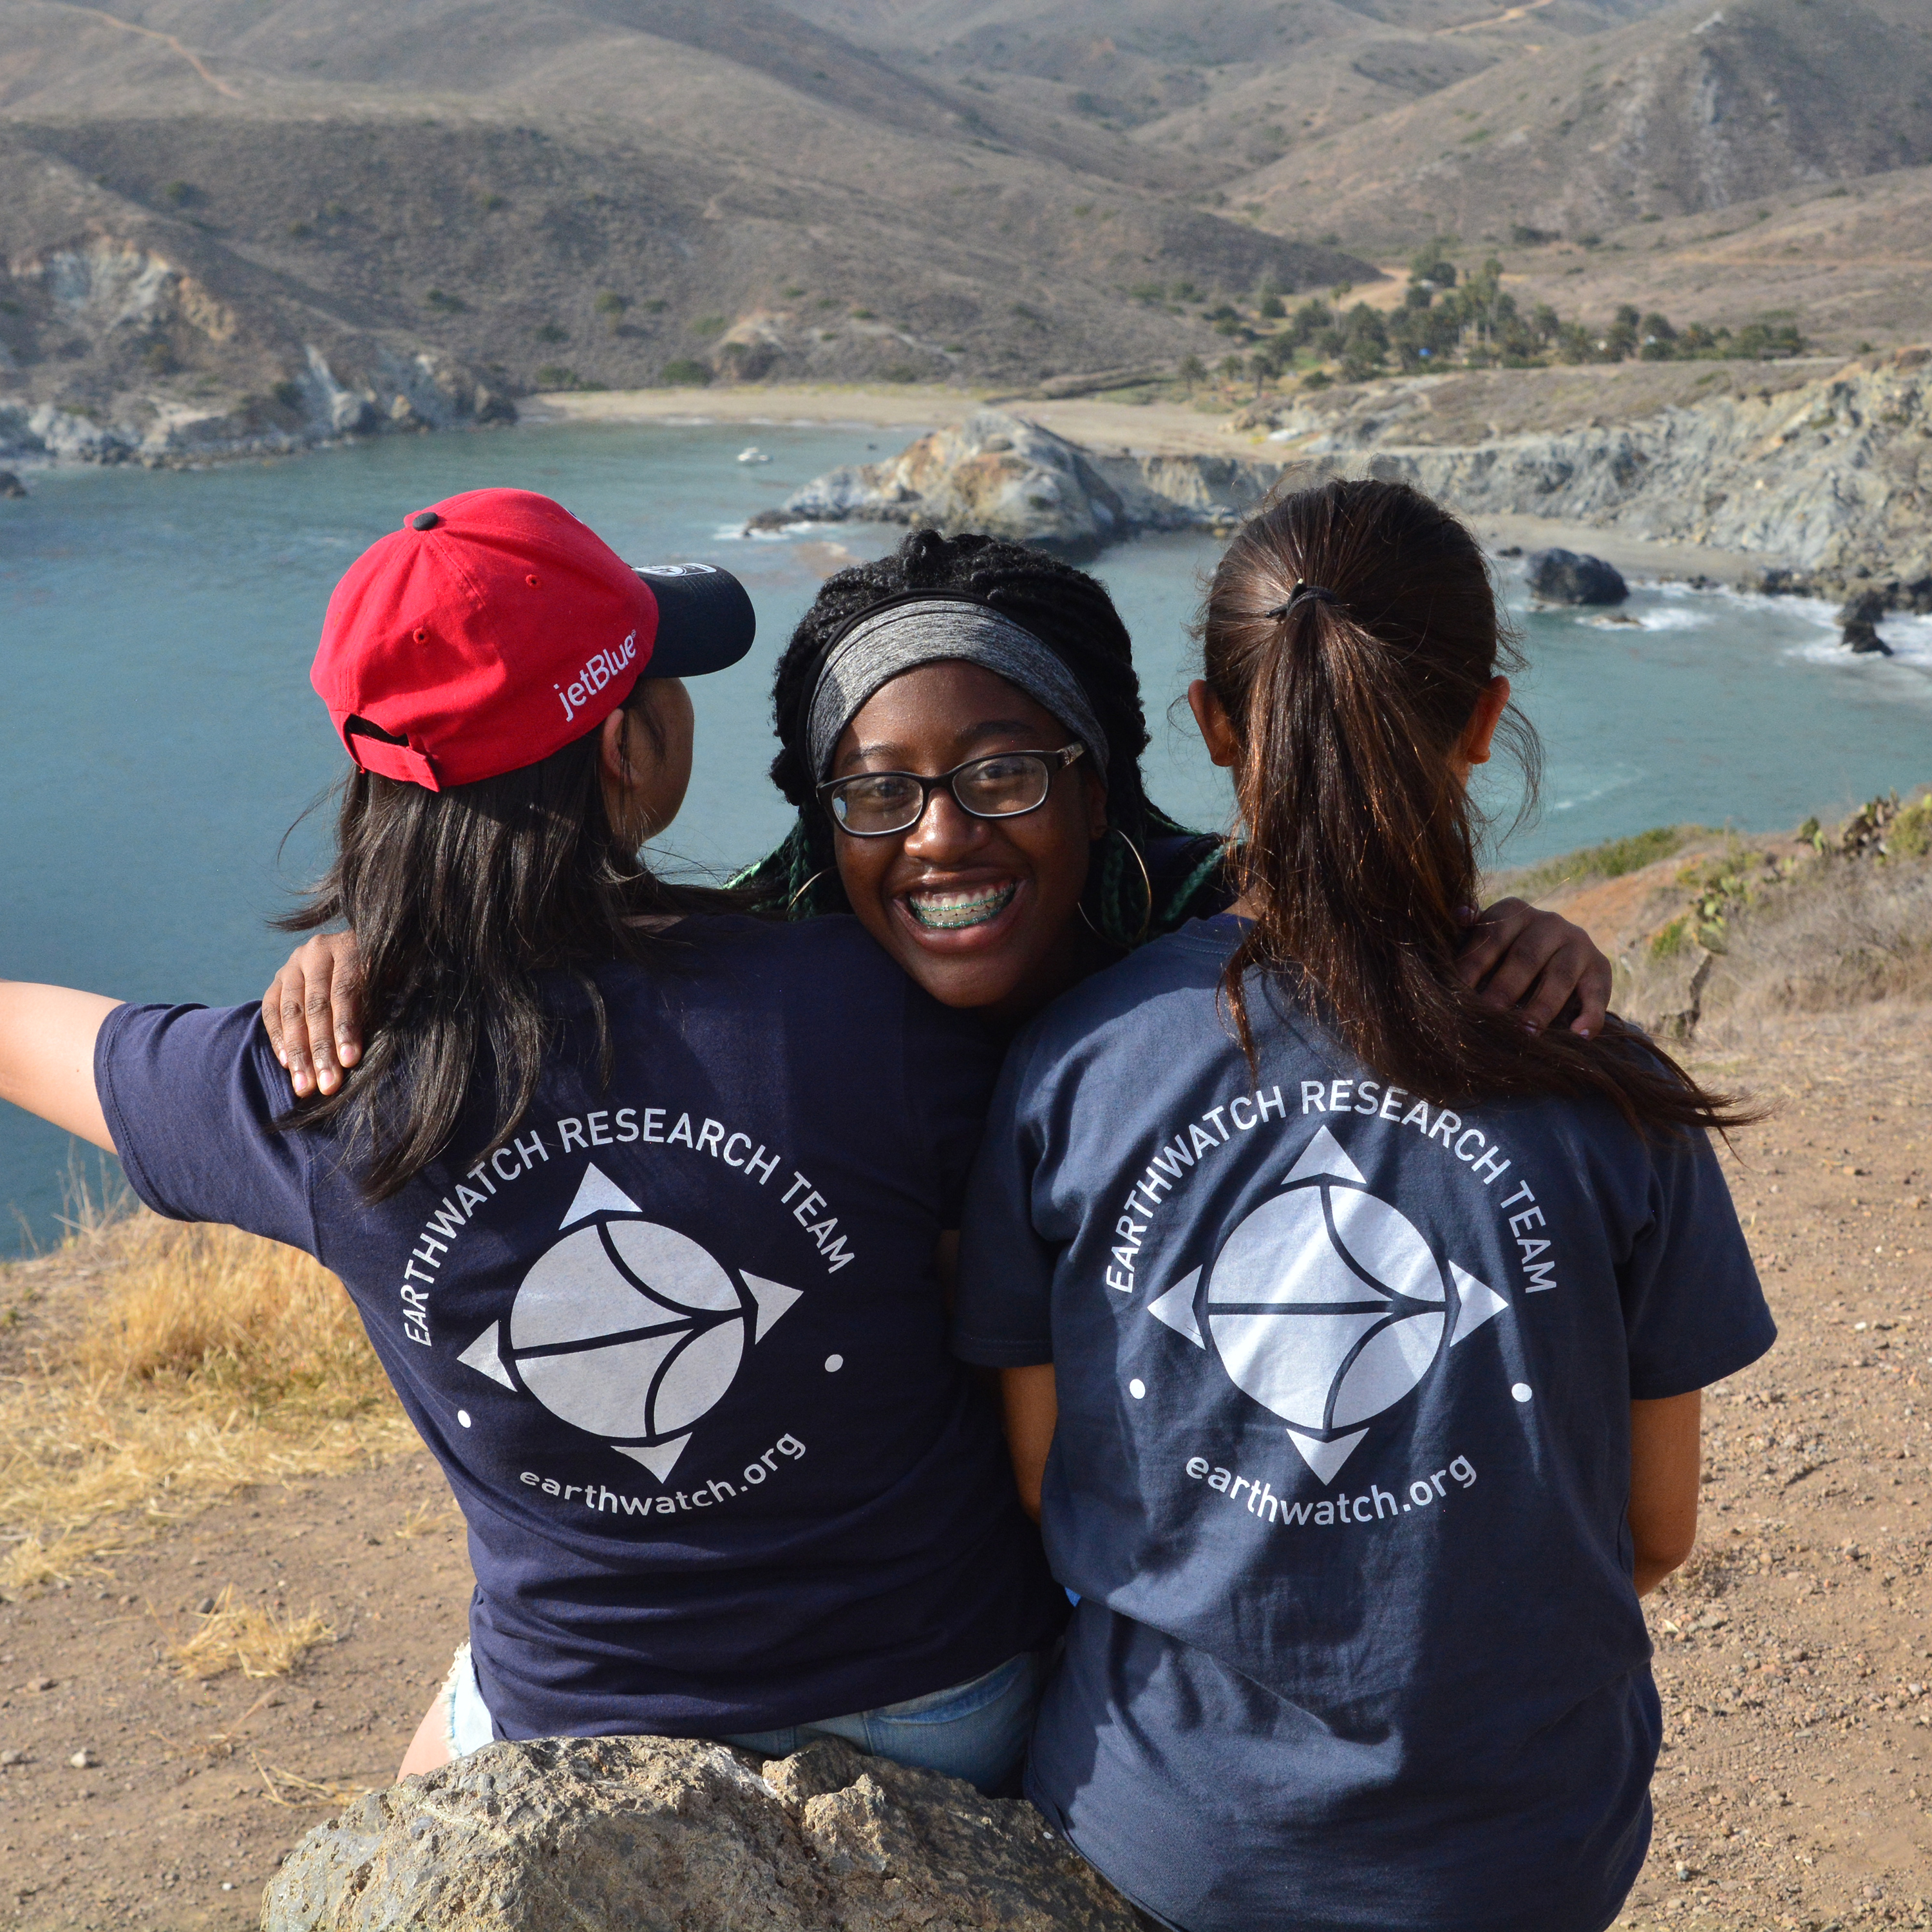 This fellowship empowers female-identifying teens to expand their interest in science and technology and to build confidence through hands-on environmental research alongside female experts in the field.